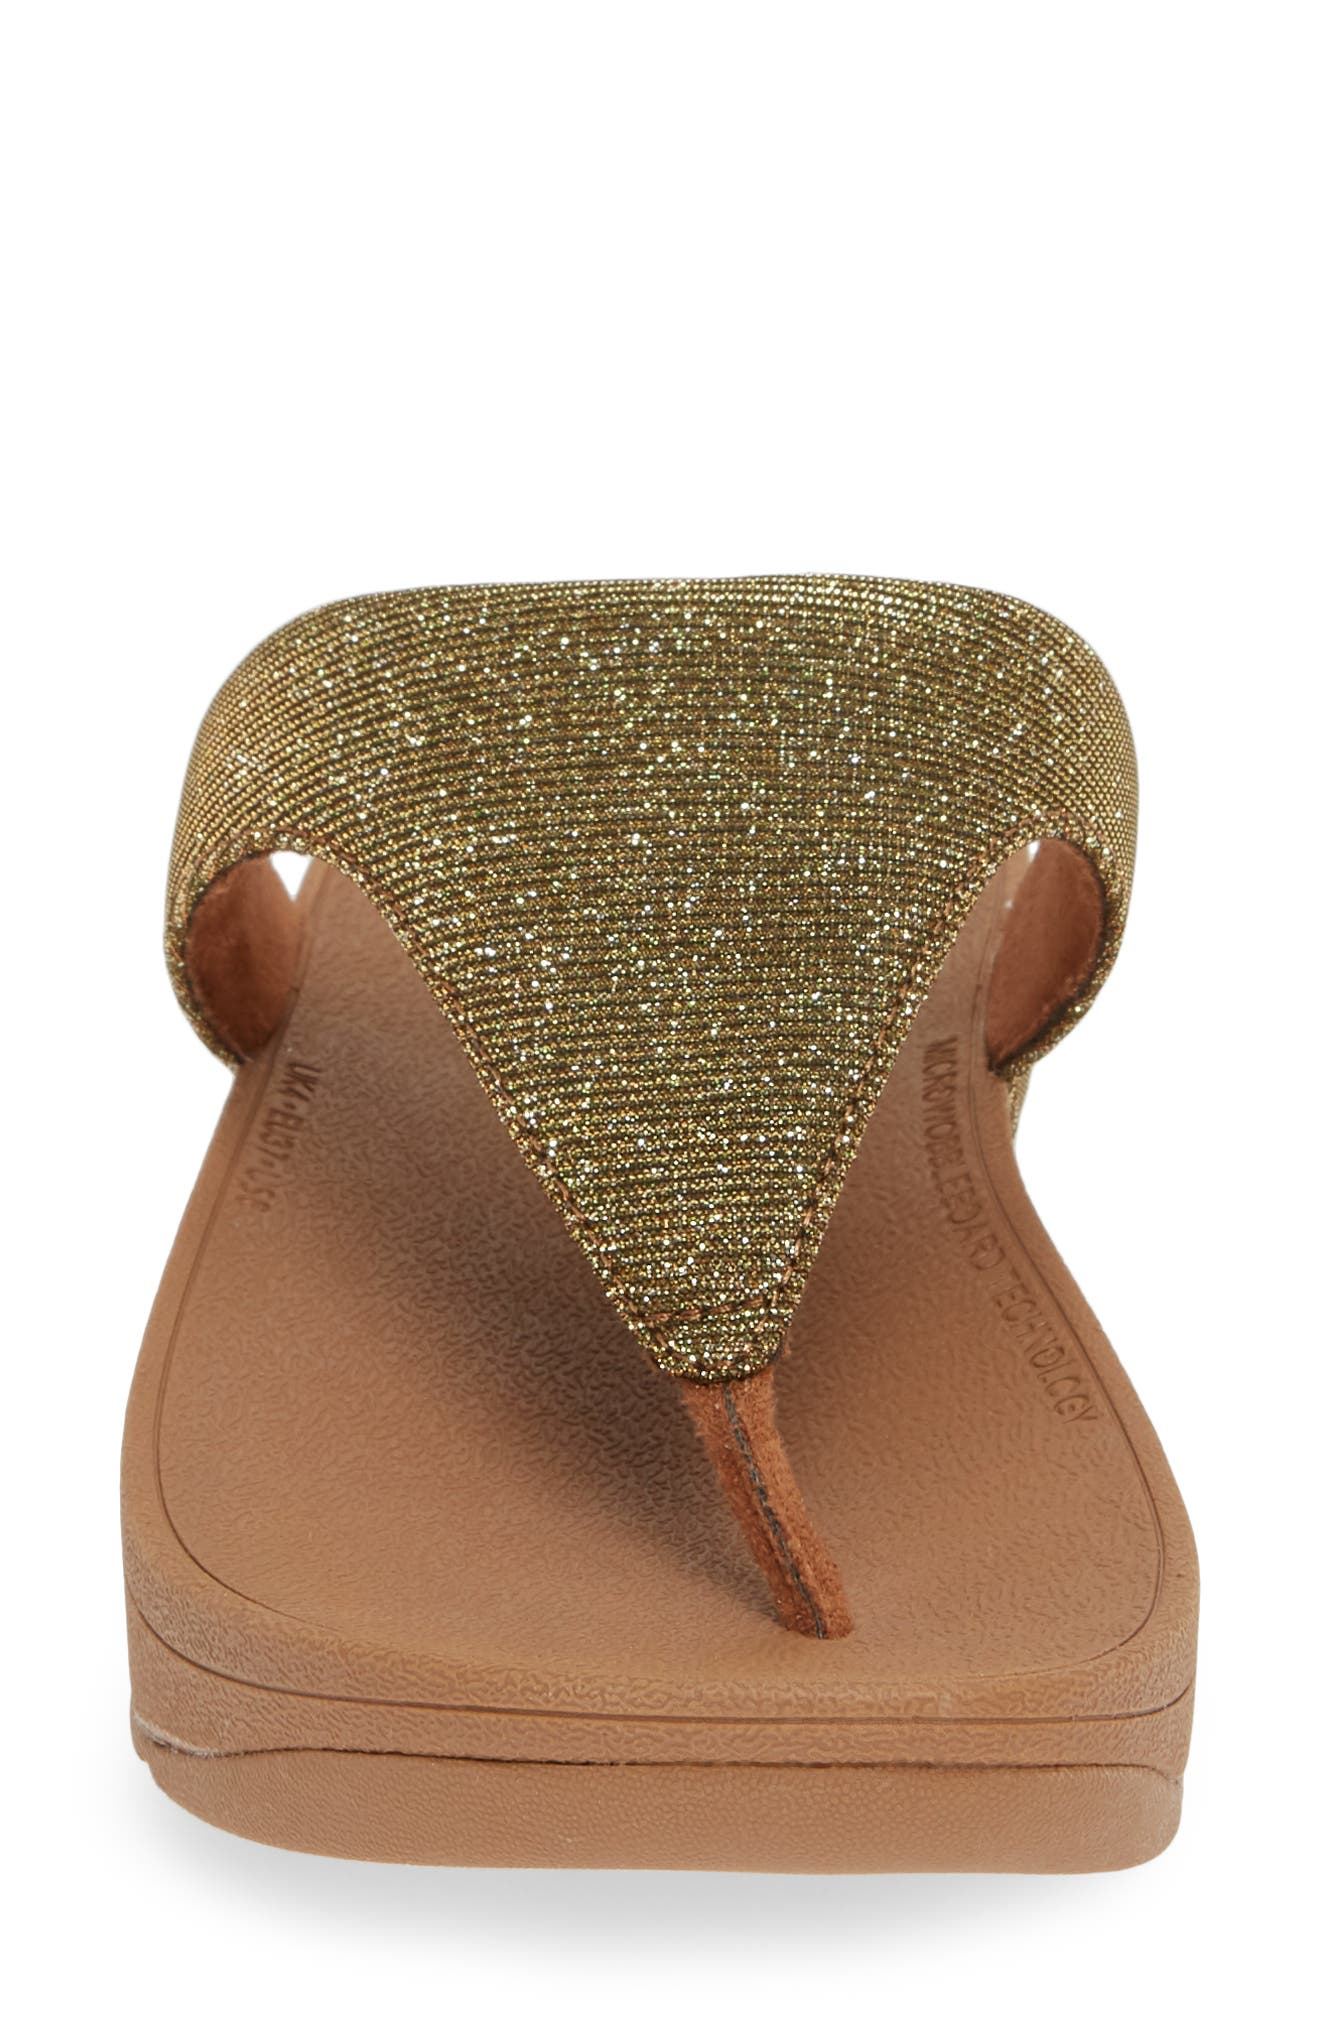 FITFLOP, Lottie Glitzy Wedge Flip Flop, Alternate thumbnail 4, color, ARTISAN GOLD